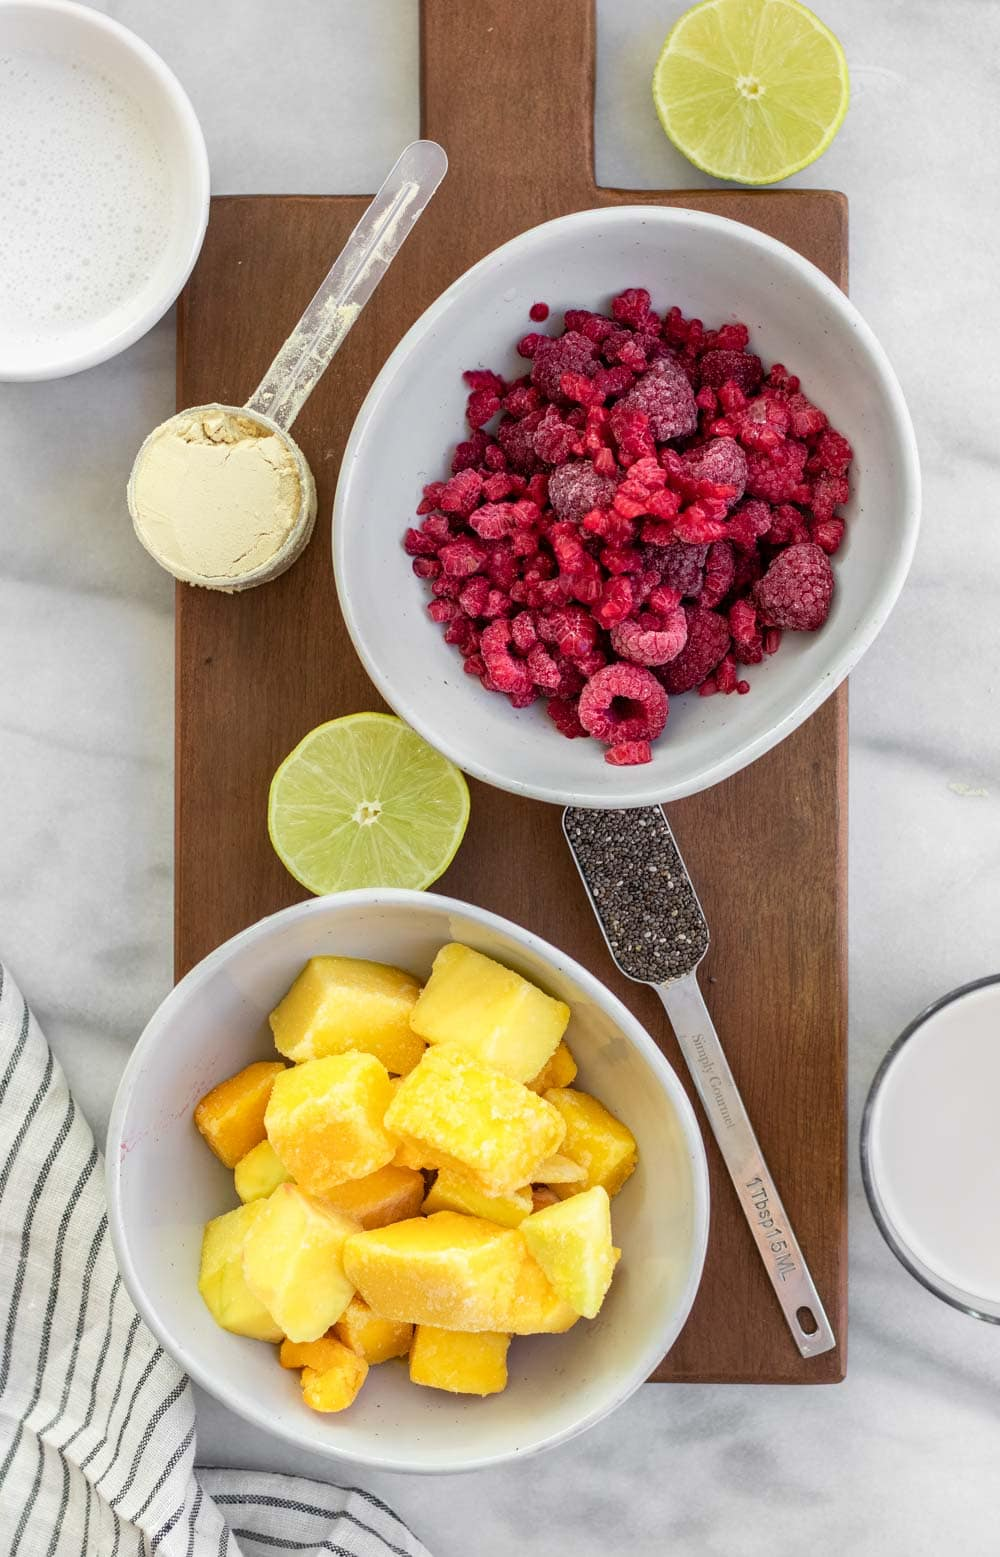 Ingredients for the smoothie arranged in bowls.